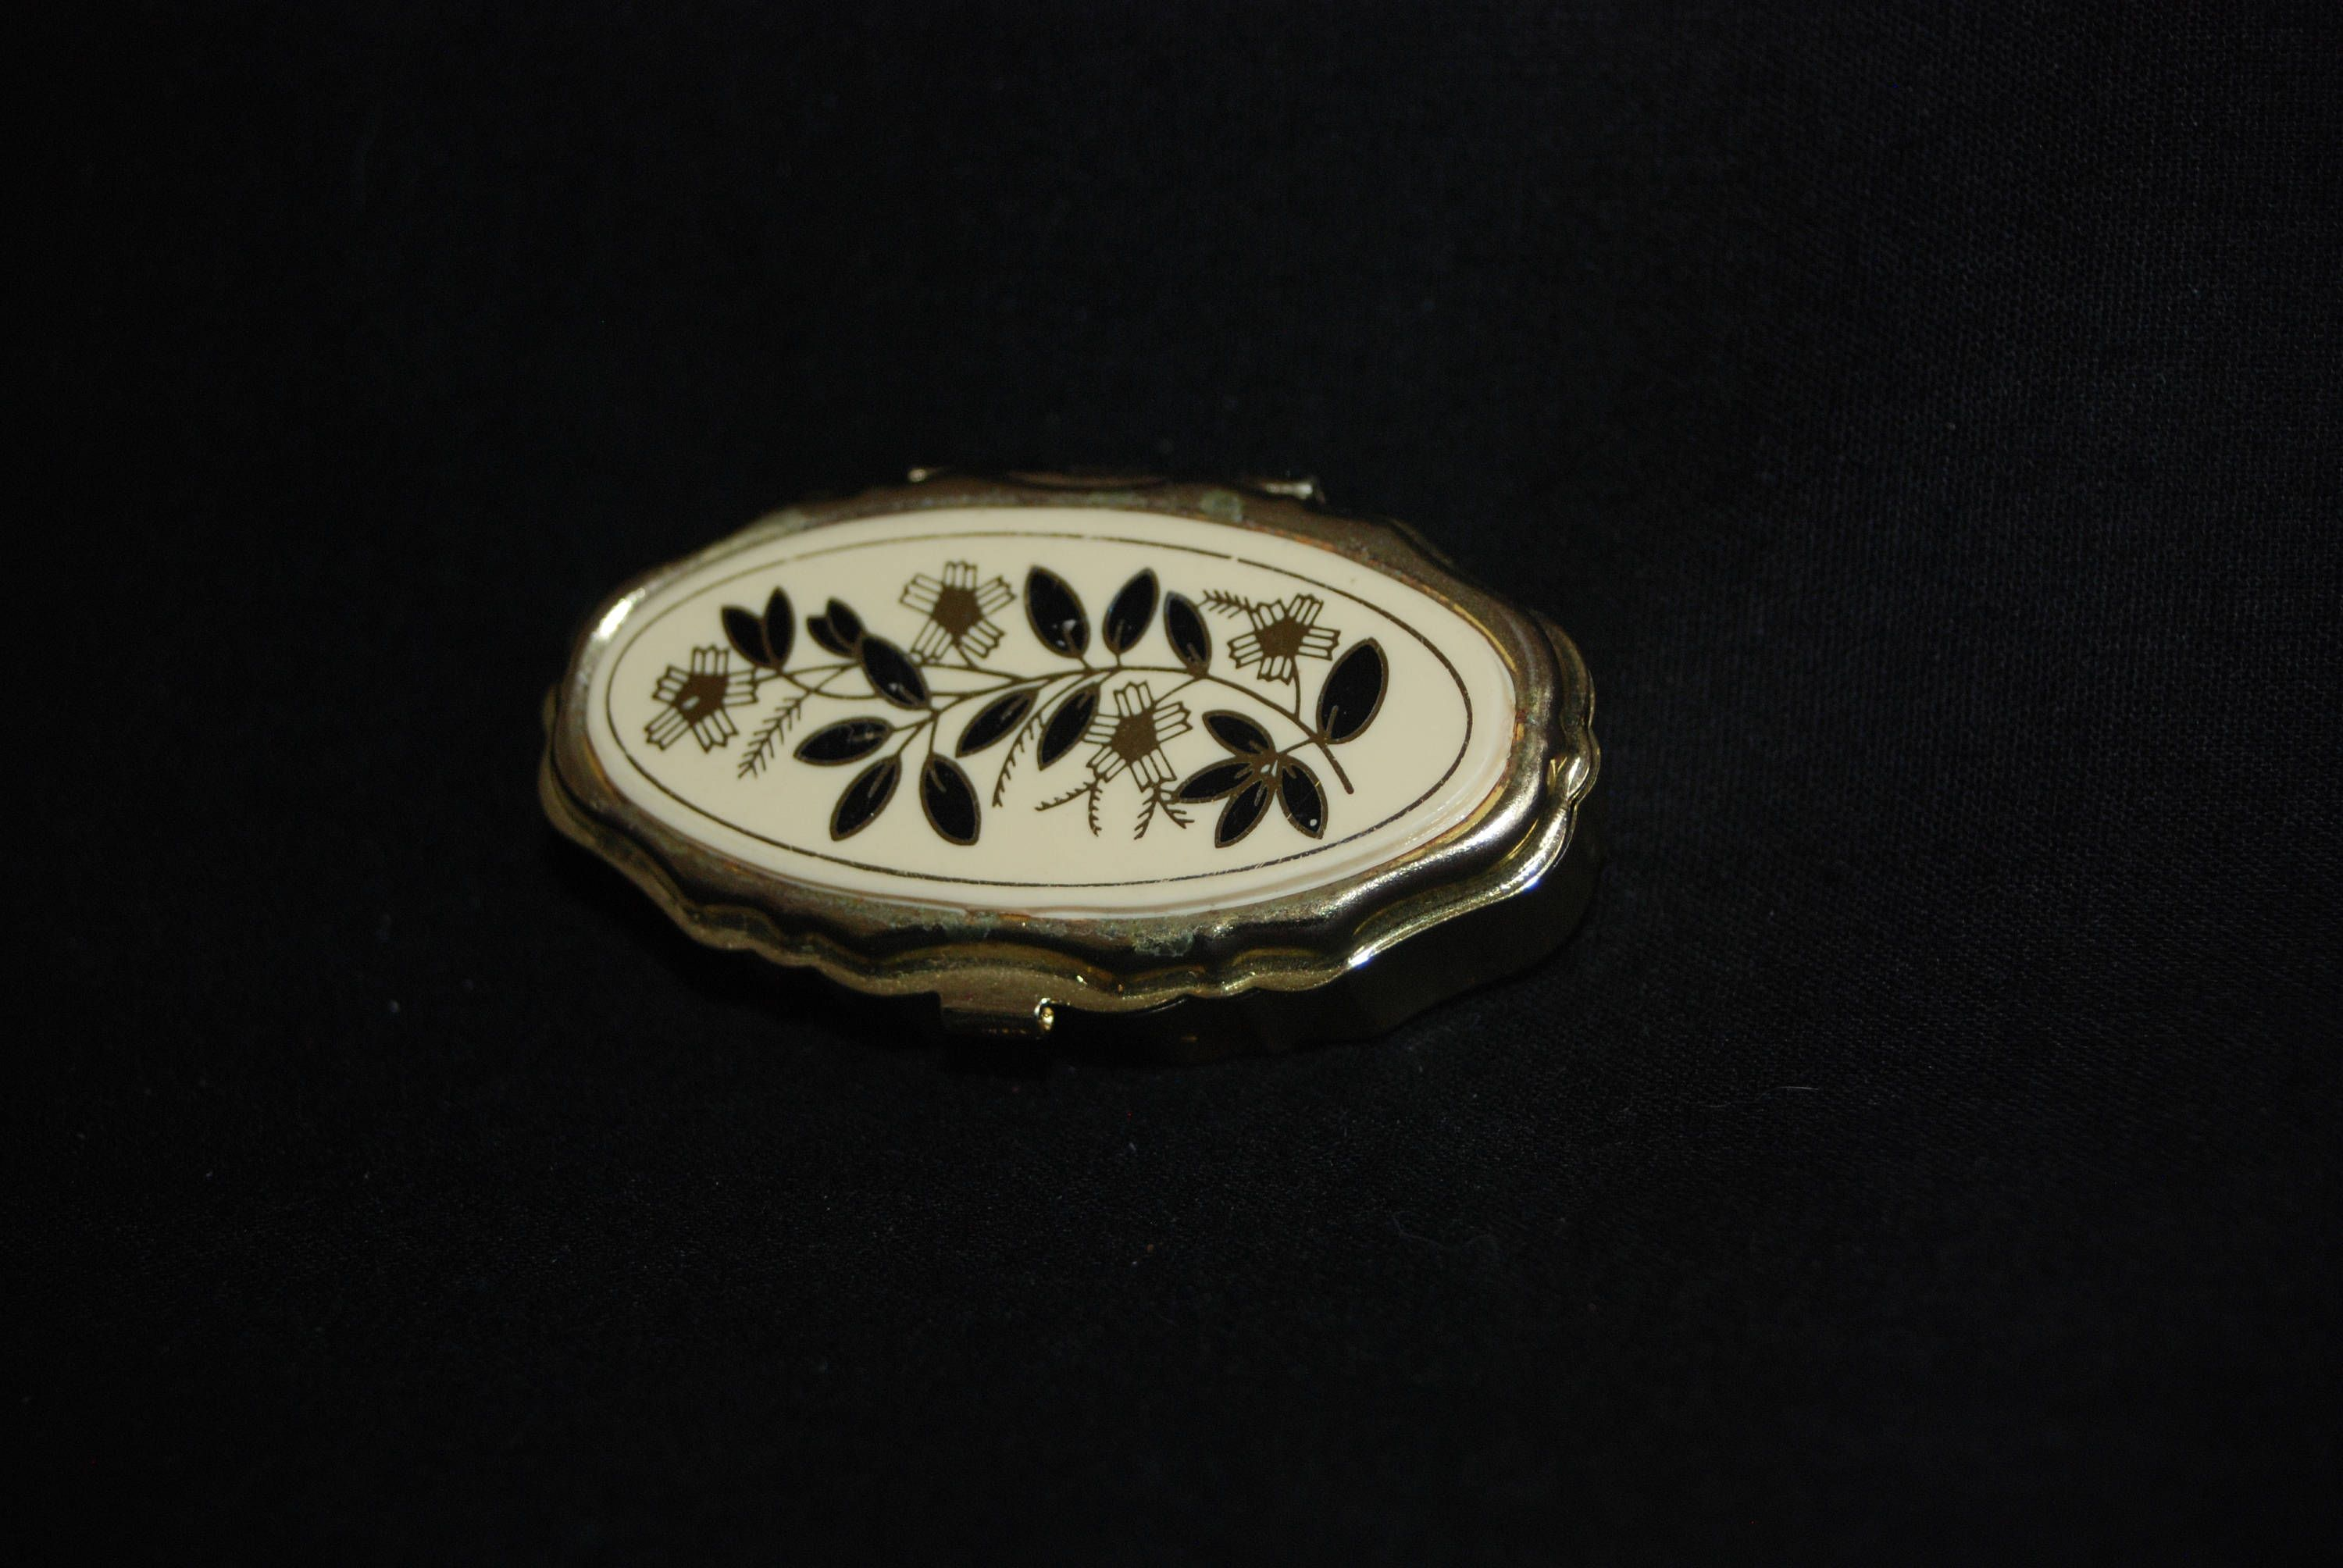 Flowers pill box vintage collectible flower engraved gold colored